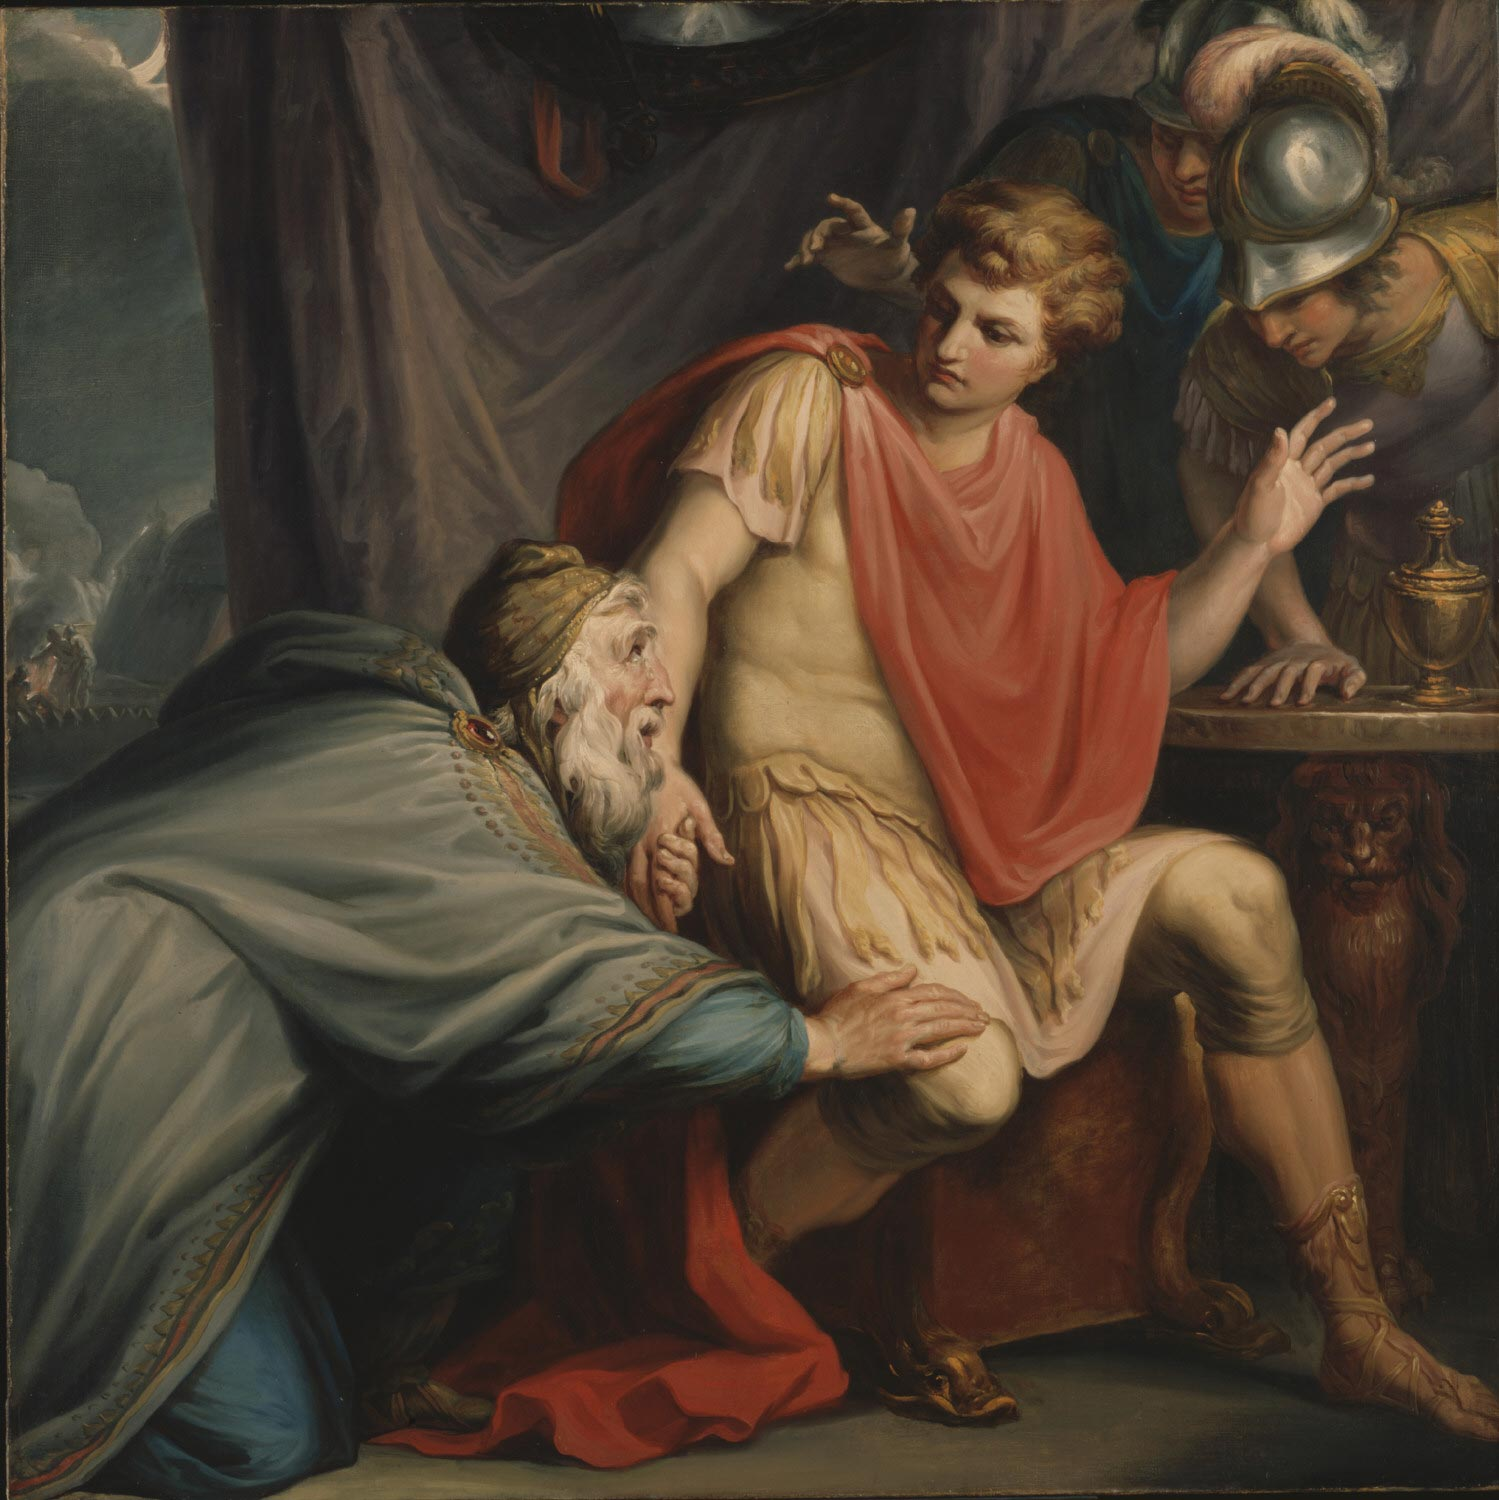 Achilles Besought by Priam for the Body of His Son Hector